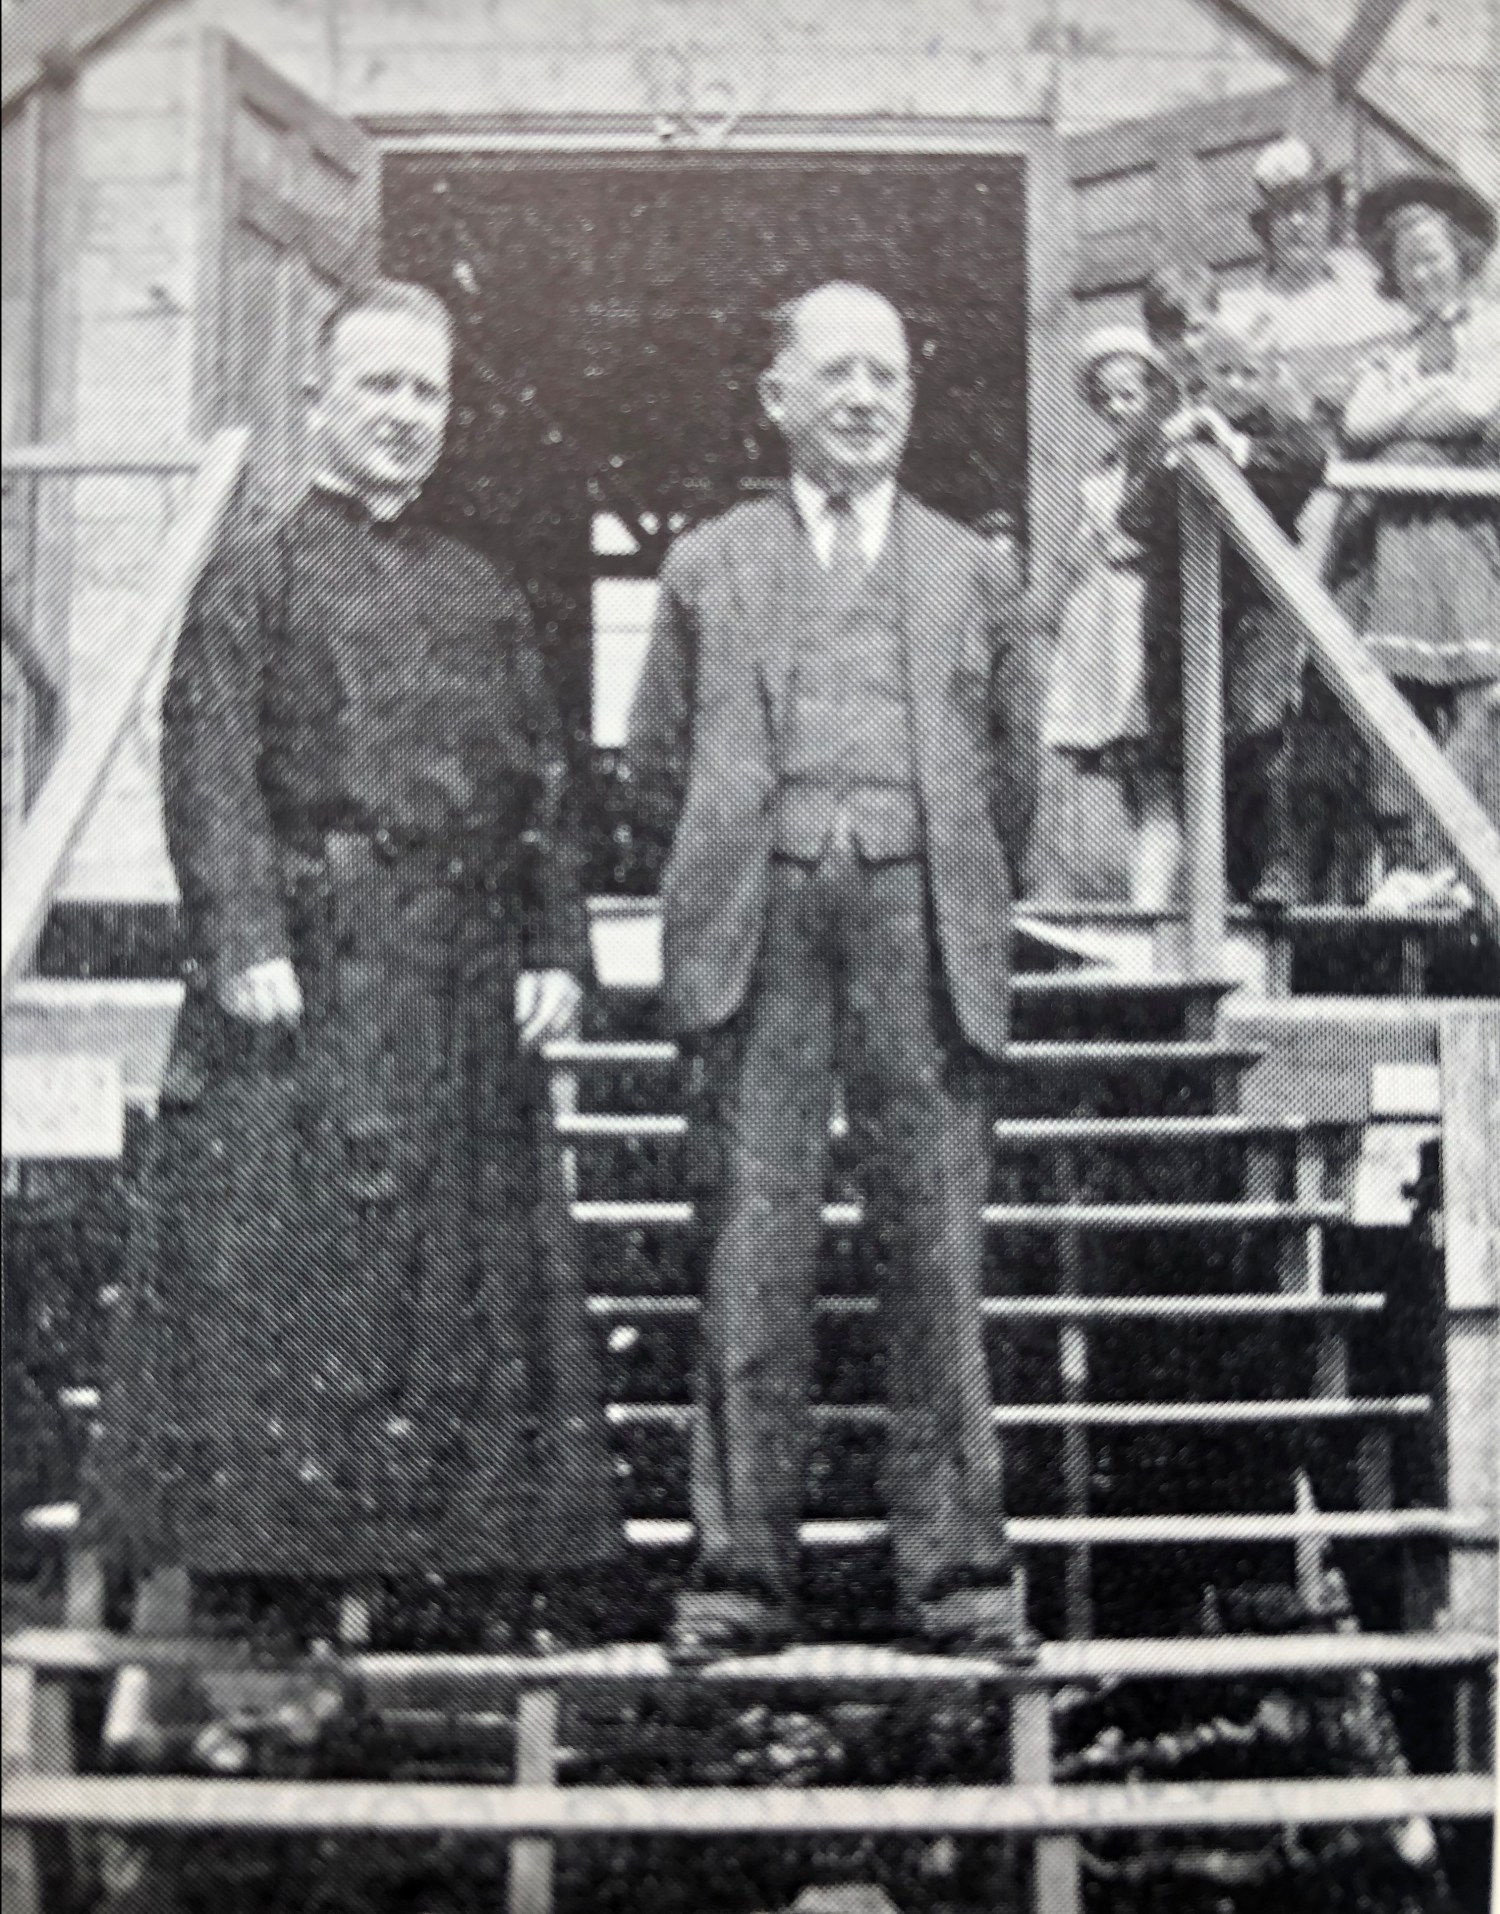 Father Herne, S.J., and Alphonse Ruel, building committee chairman